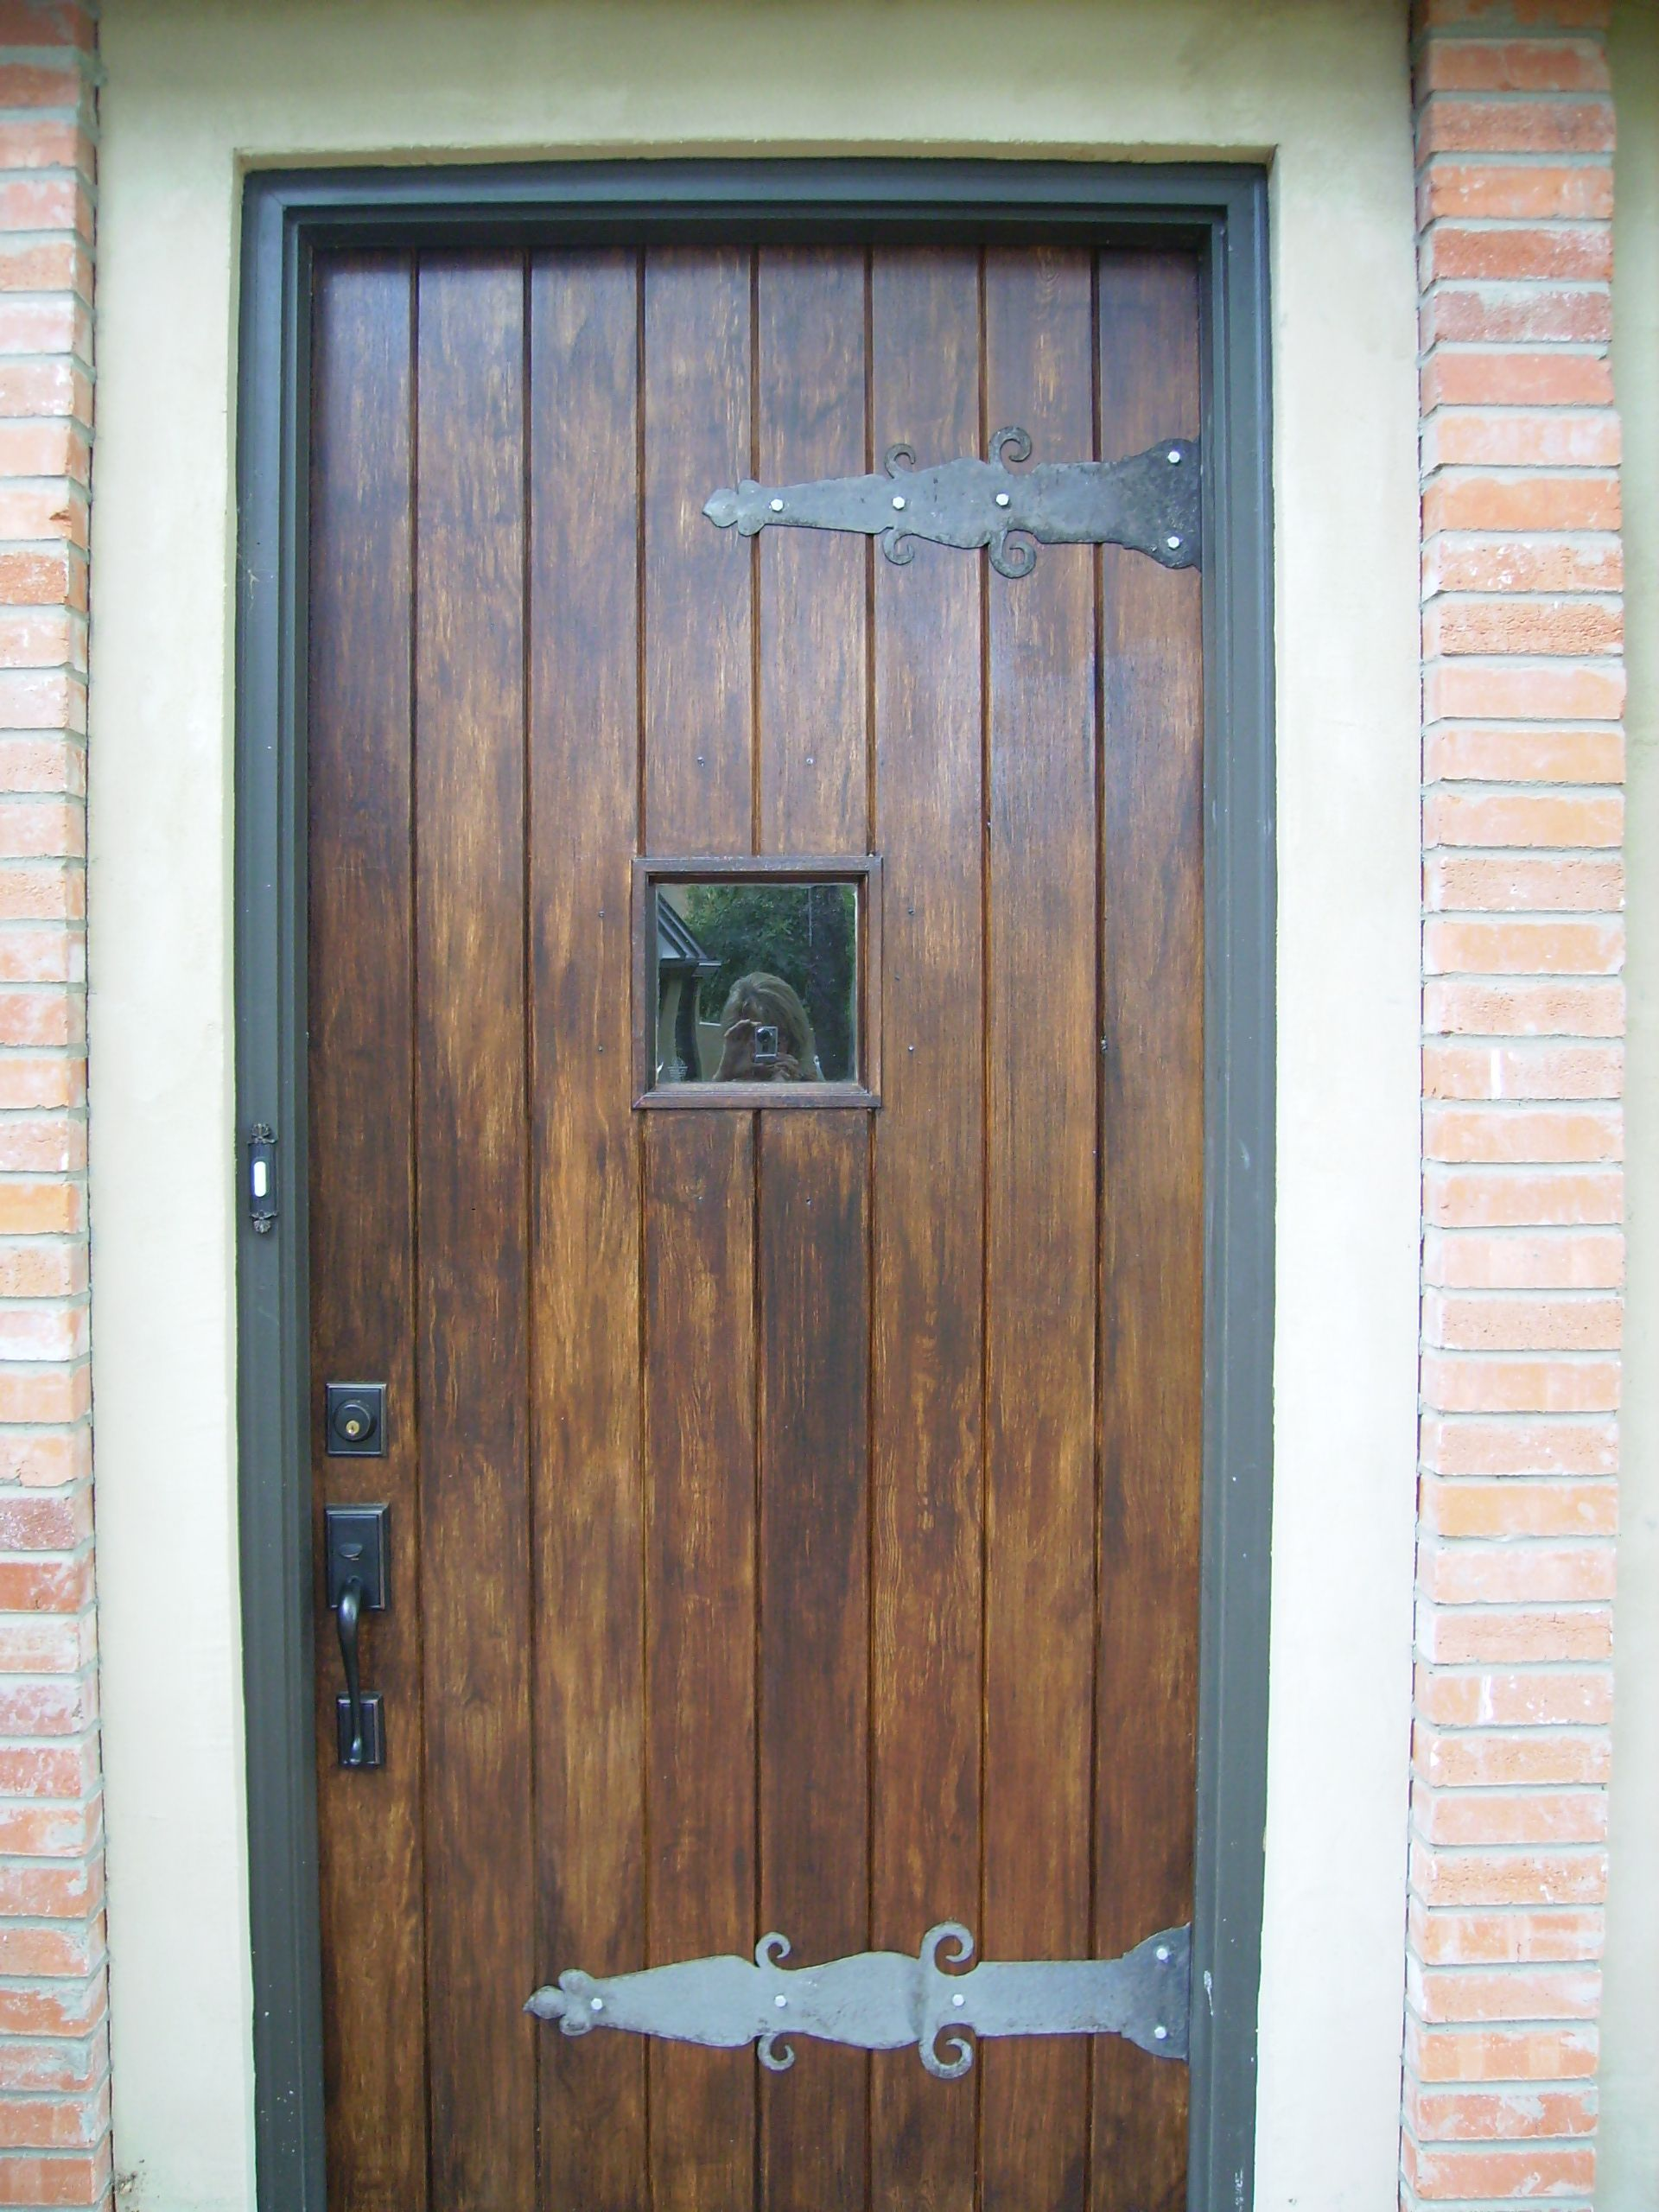 Wood Graining A Front Door Faux Bois Giovannetti Decorative Studio Lubbock Texas My